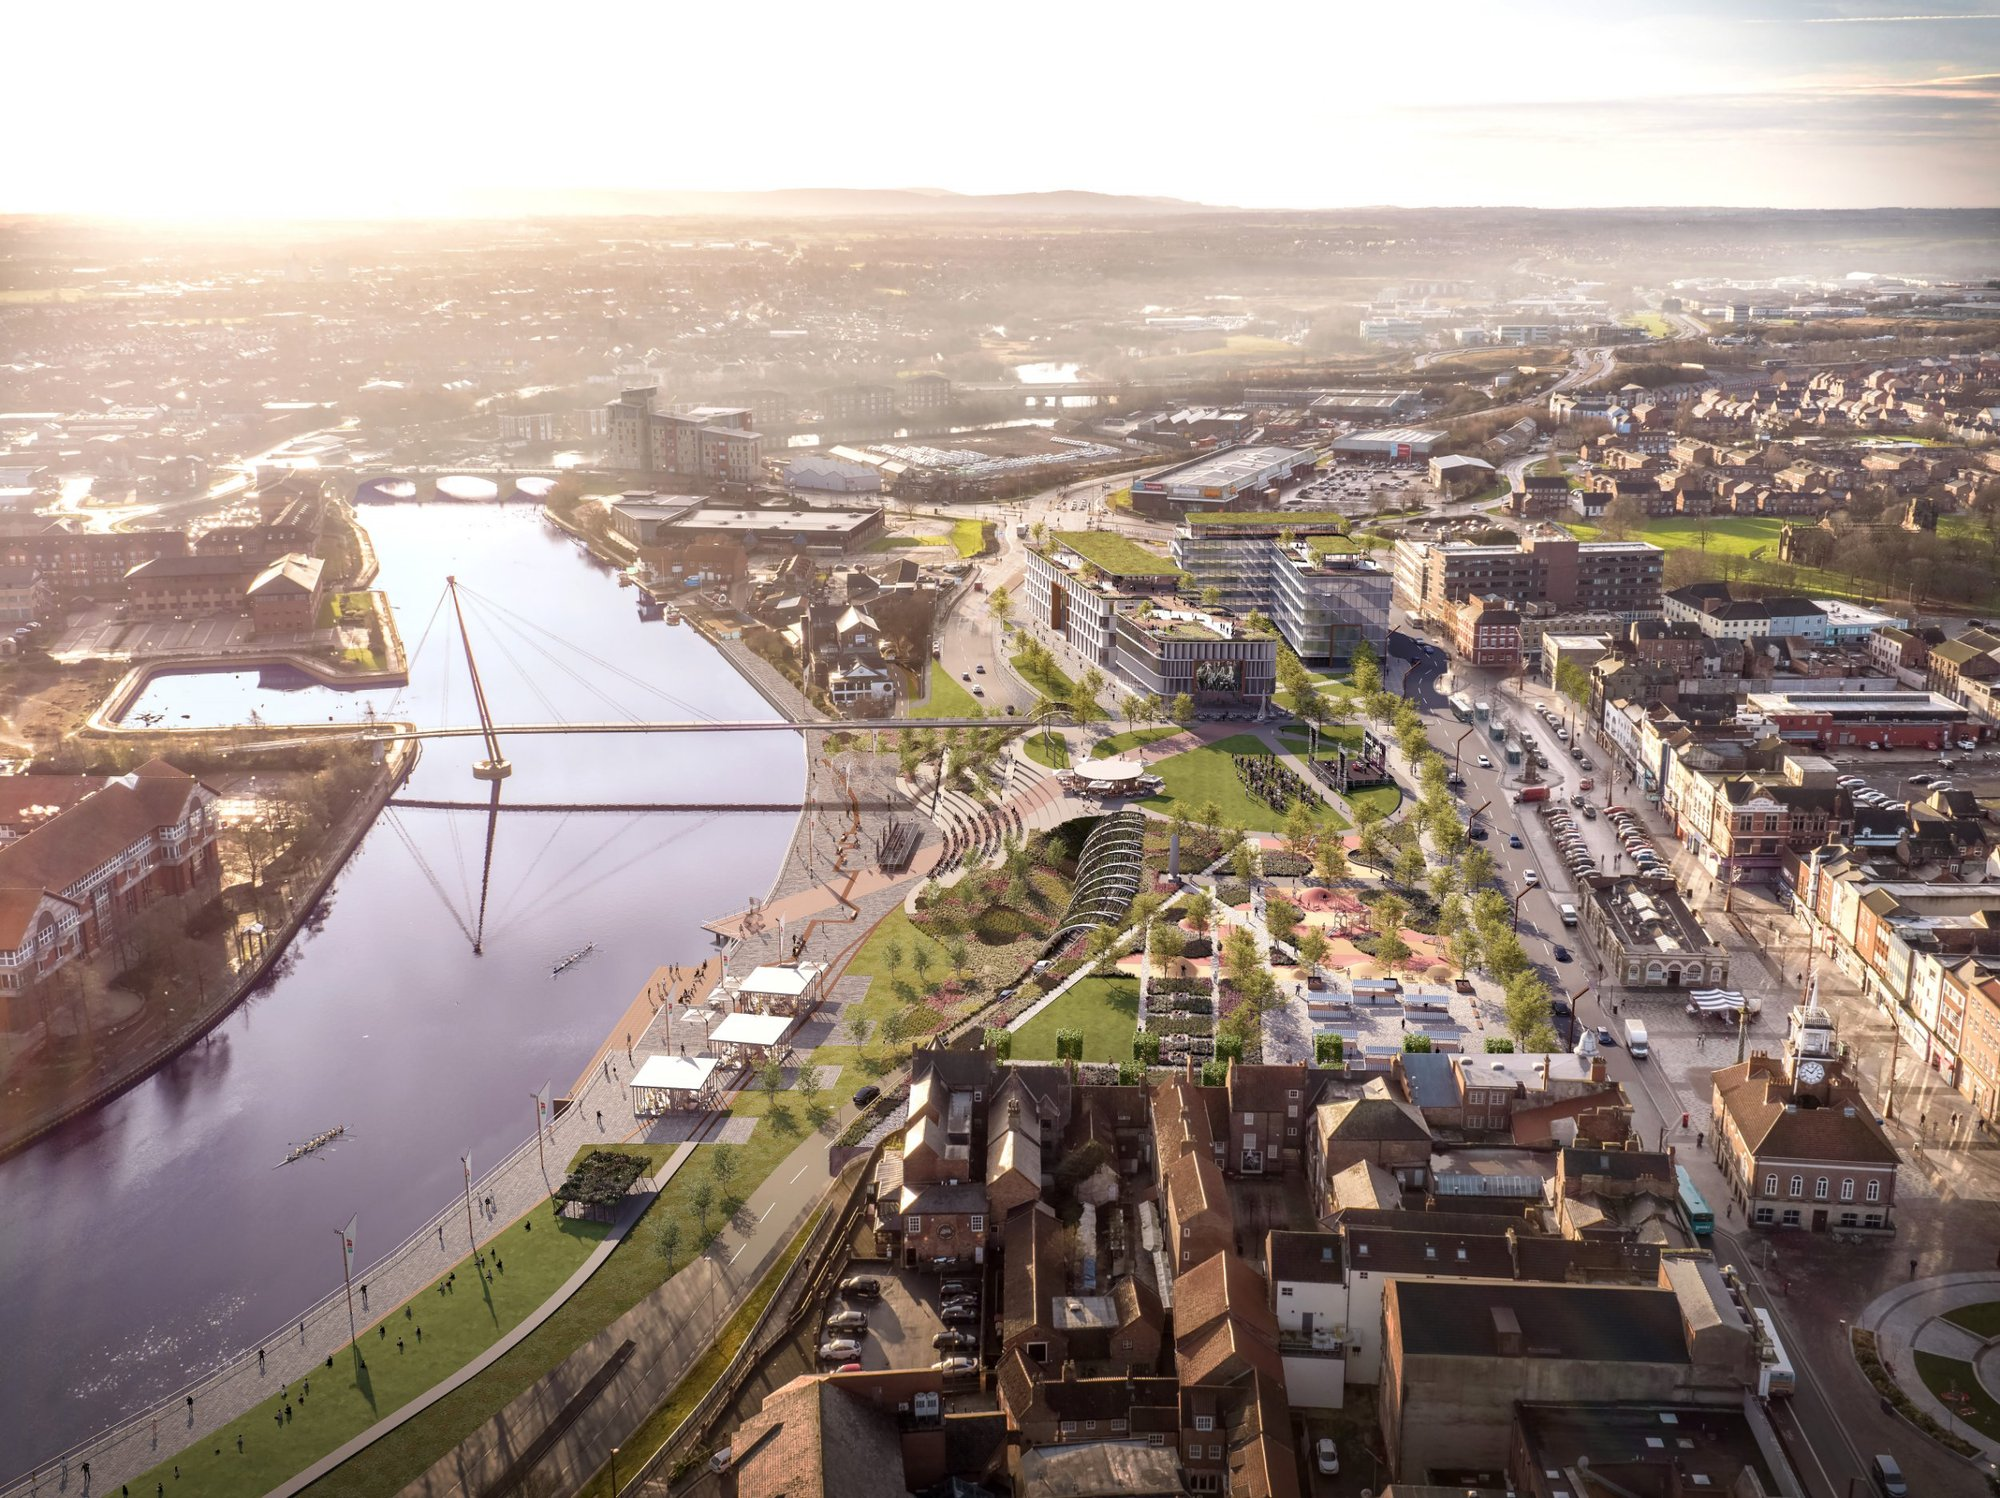 Stockton: High Street To Be Demolished to Make Way for Riverside Park